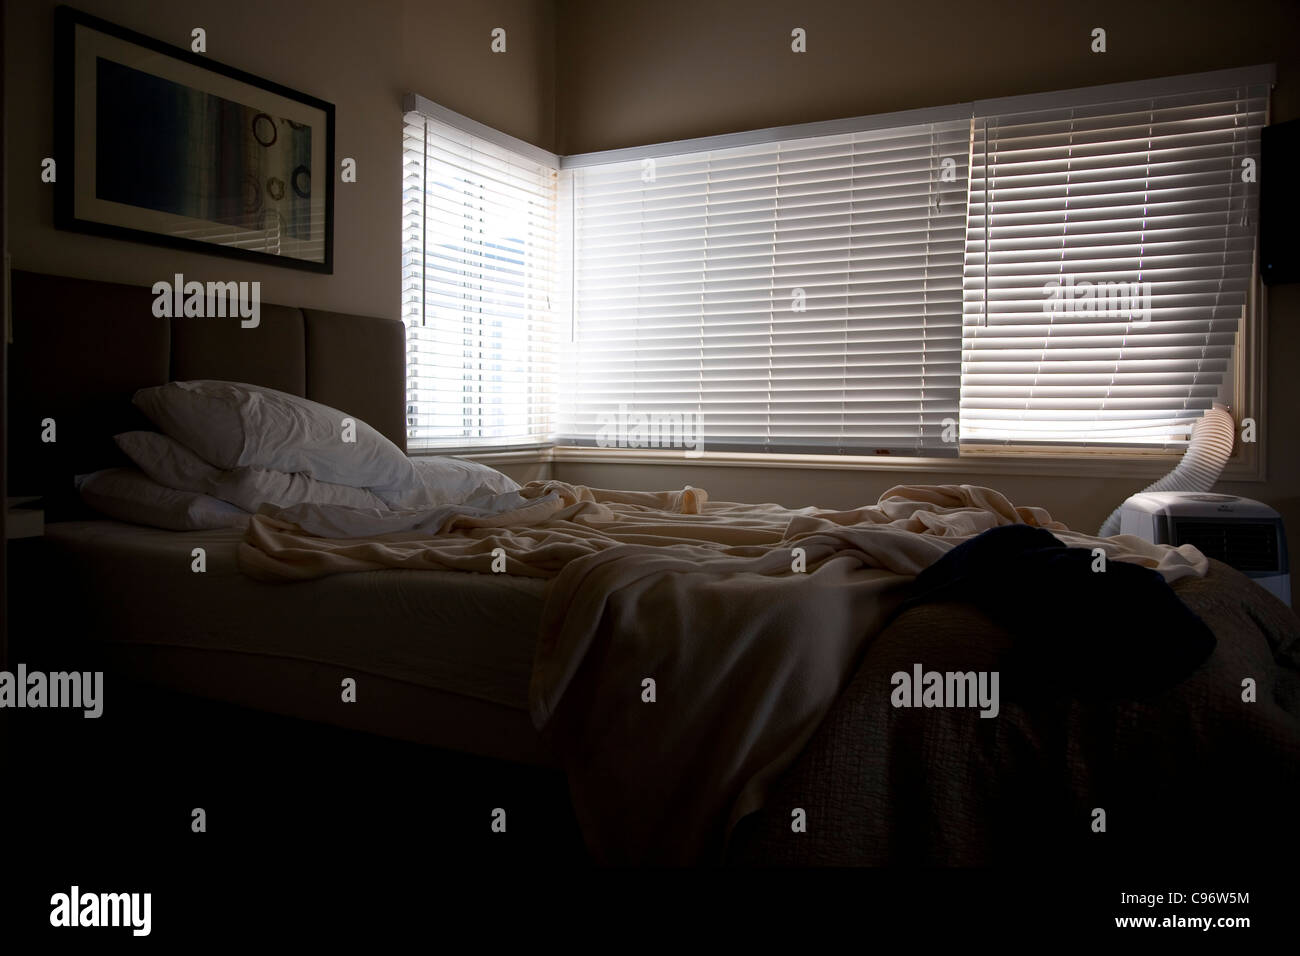 Unmade bed in Hotel room - Stock Image